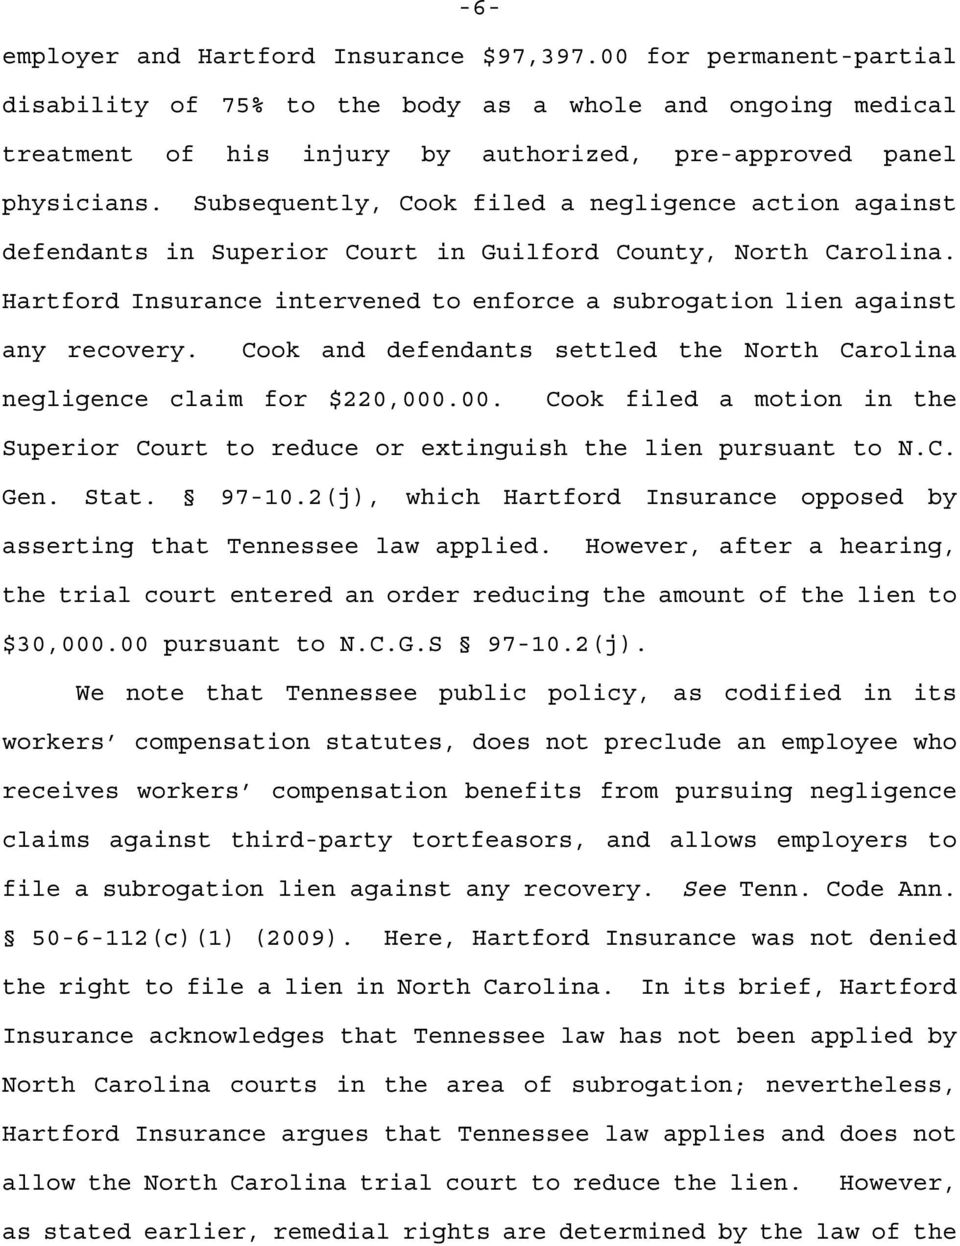 Cook and defendants settled the North Carolina negligence claim for $220,000.00. Cook filed a motion in the Superior Court to reduce or extinguish the lien pursuant to N.C. Gen. Stat. 97-10.